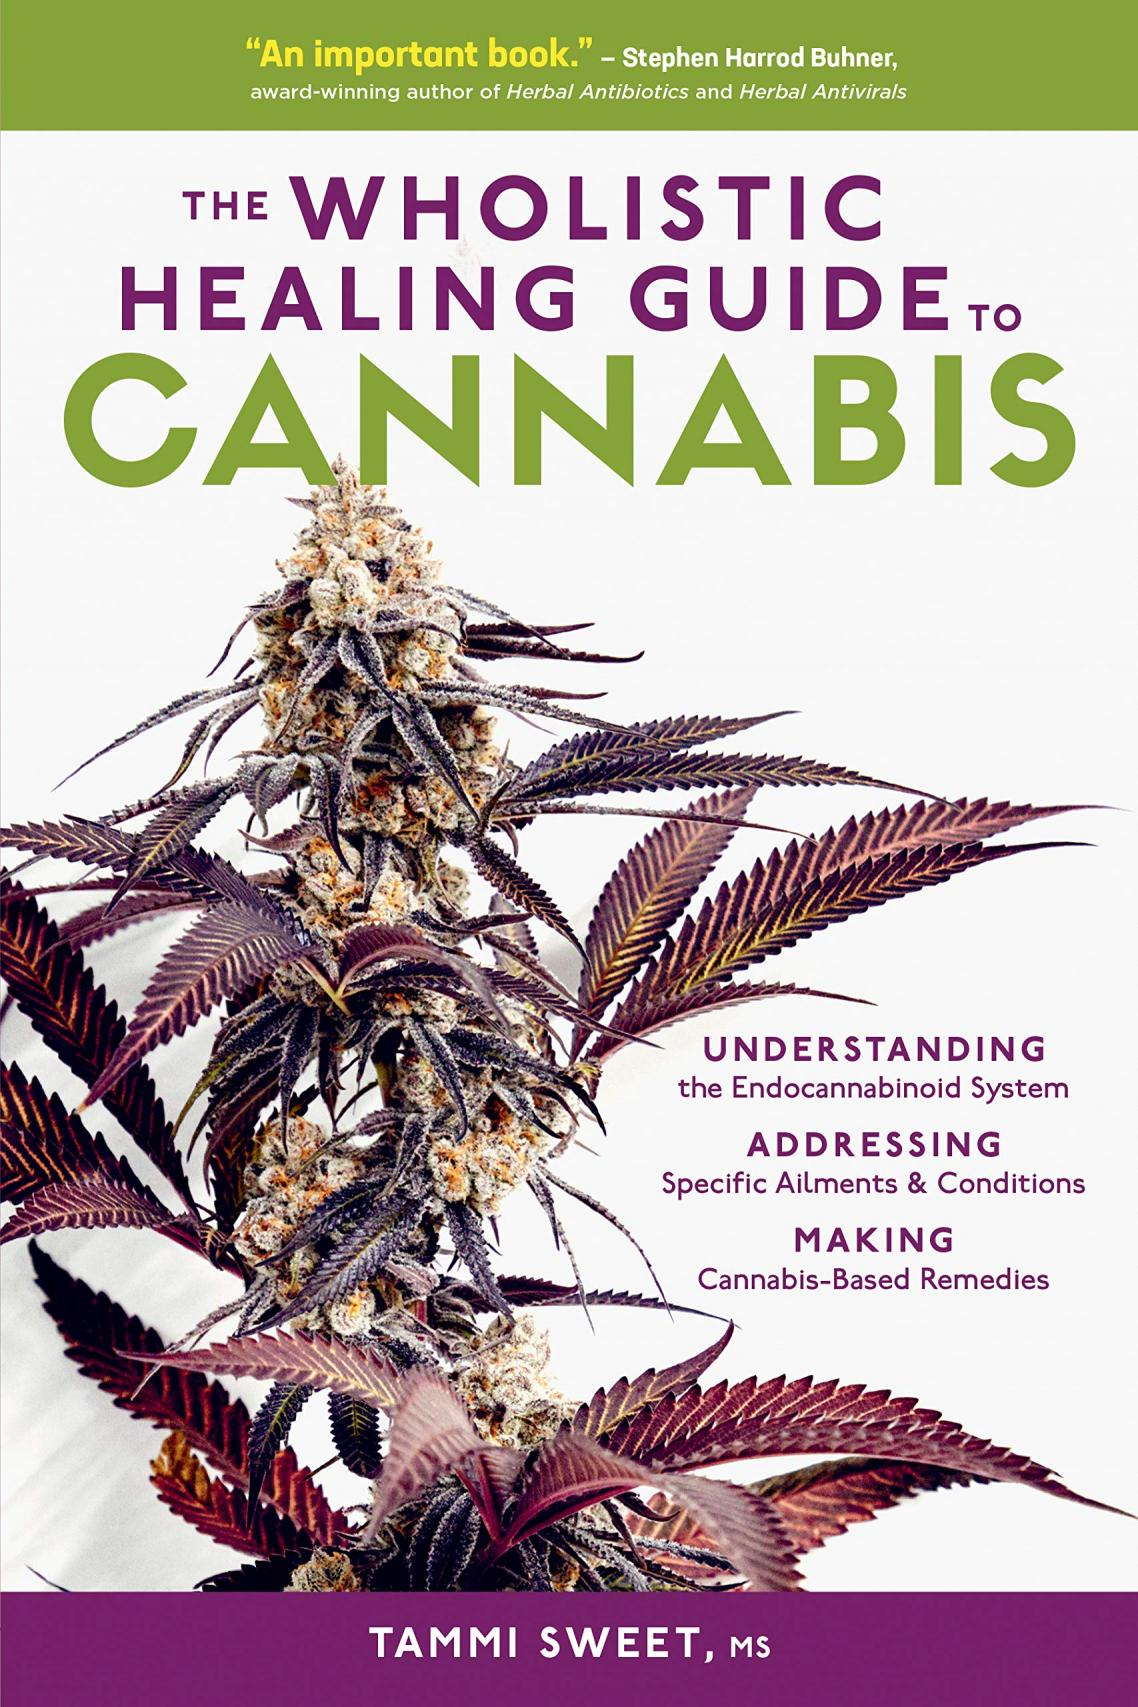 The wholistic healing guide to cannabis : understanding the endocannabinoid system, addressing specific ailments & conditions, making cannabis-based remedies